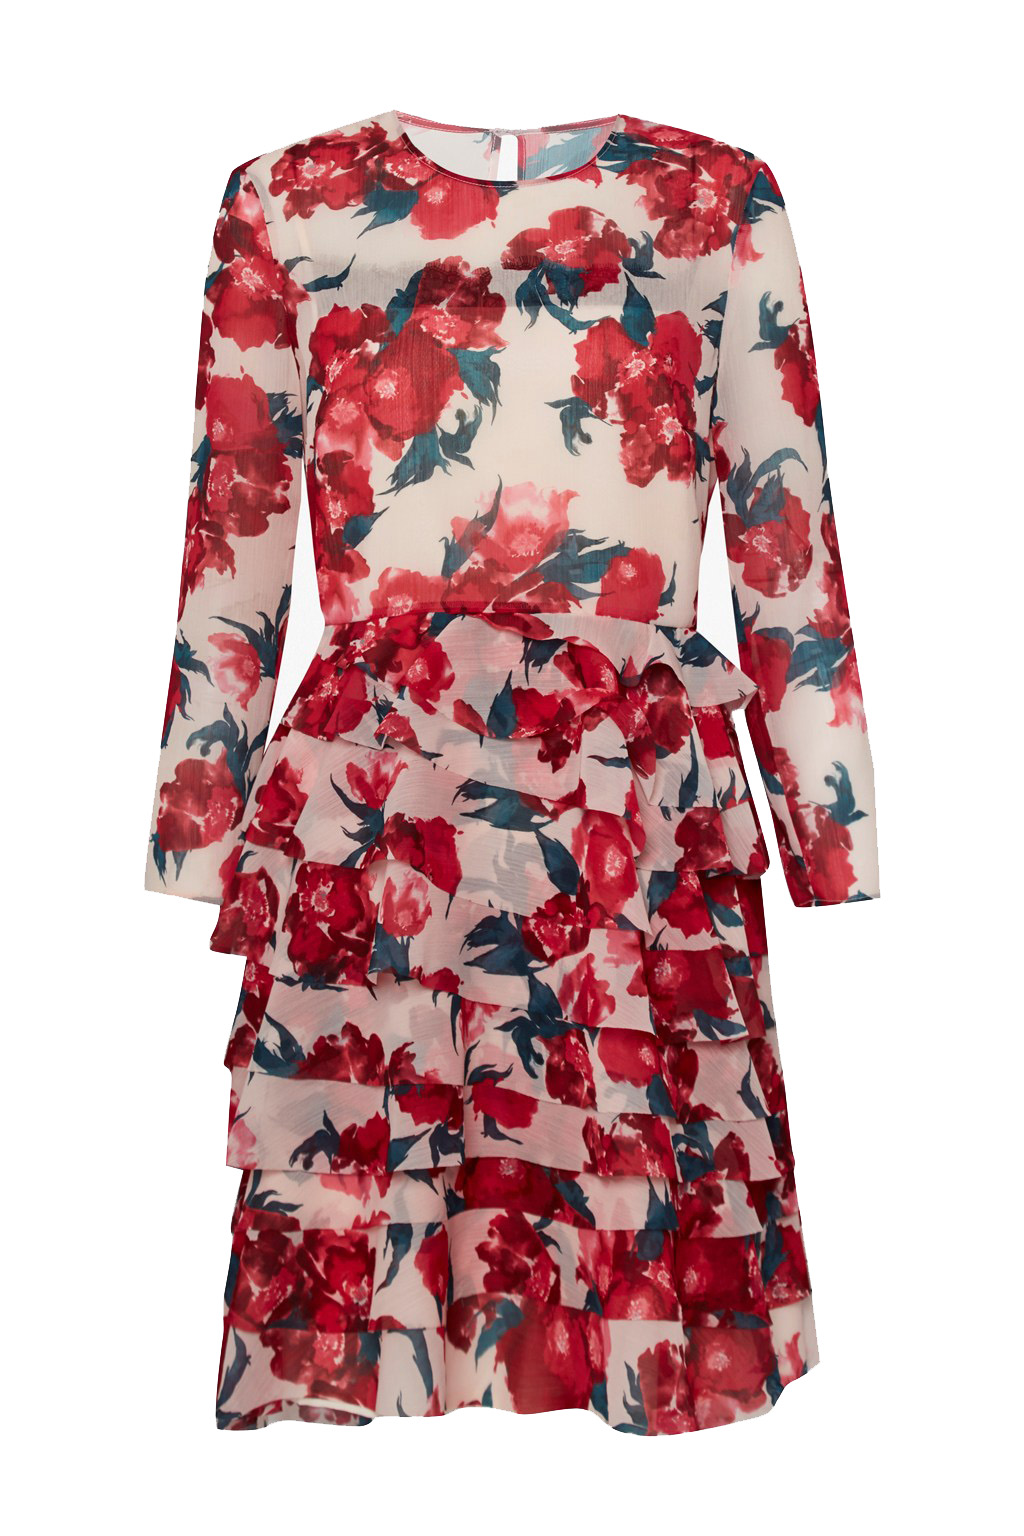 FRENCH CONNECTION ALLEGRO POPPY SHEER DRESS